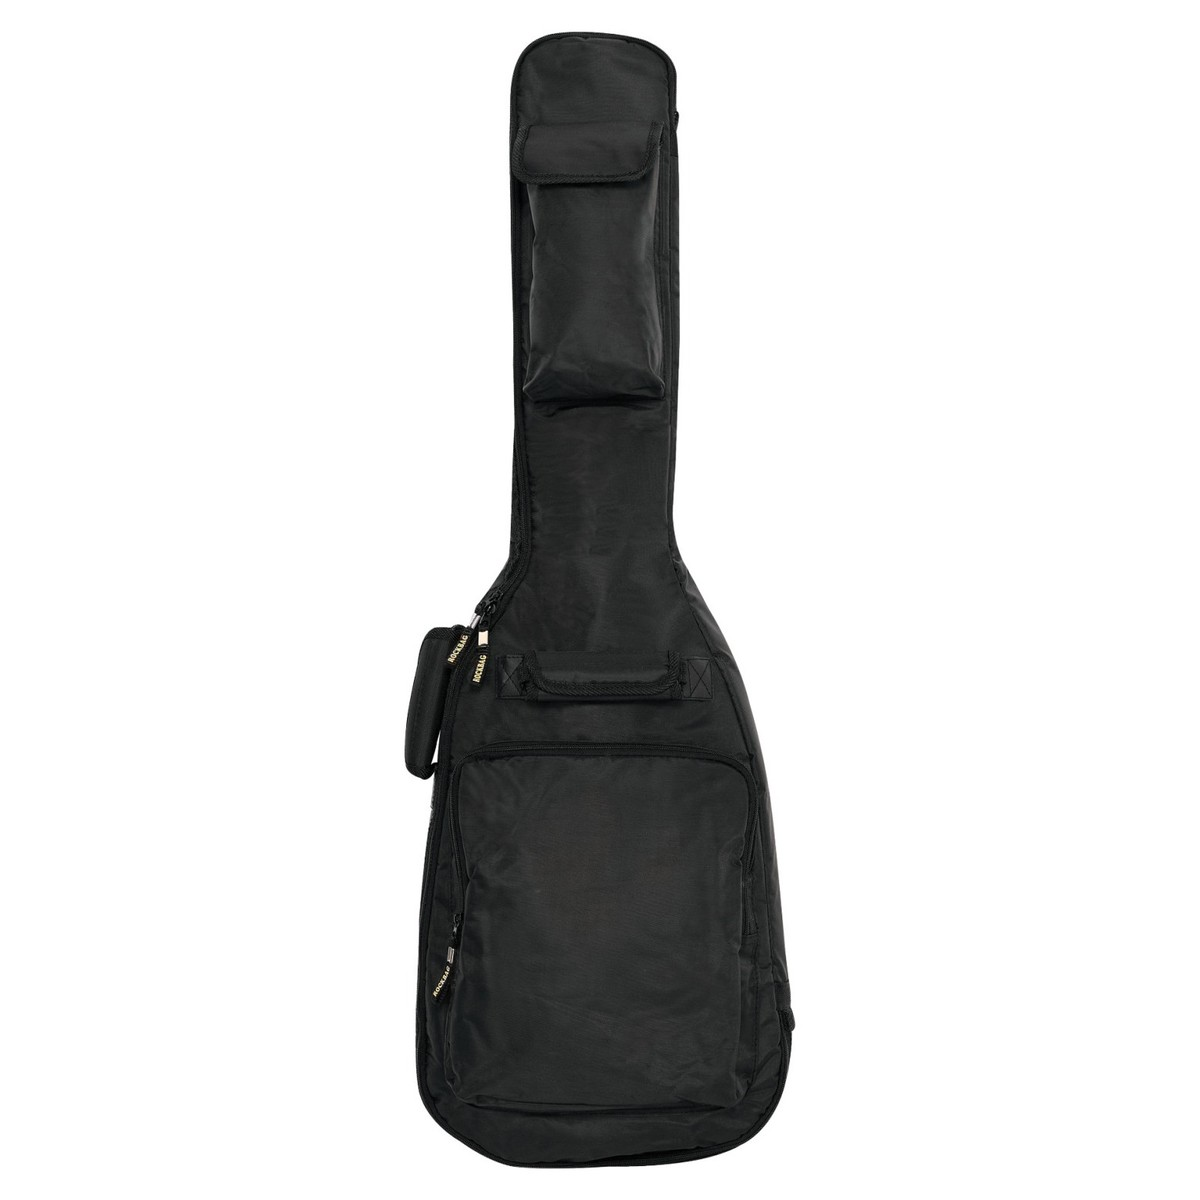 rockbag par warwick housse pour guitare electrique gamme tudiant noir. Black Bedroom Furniture Sets. Home Design Ideas